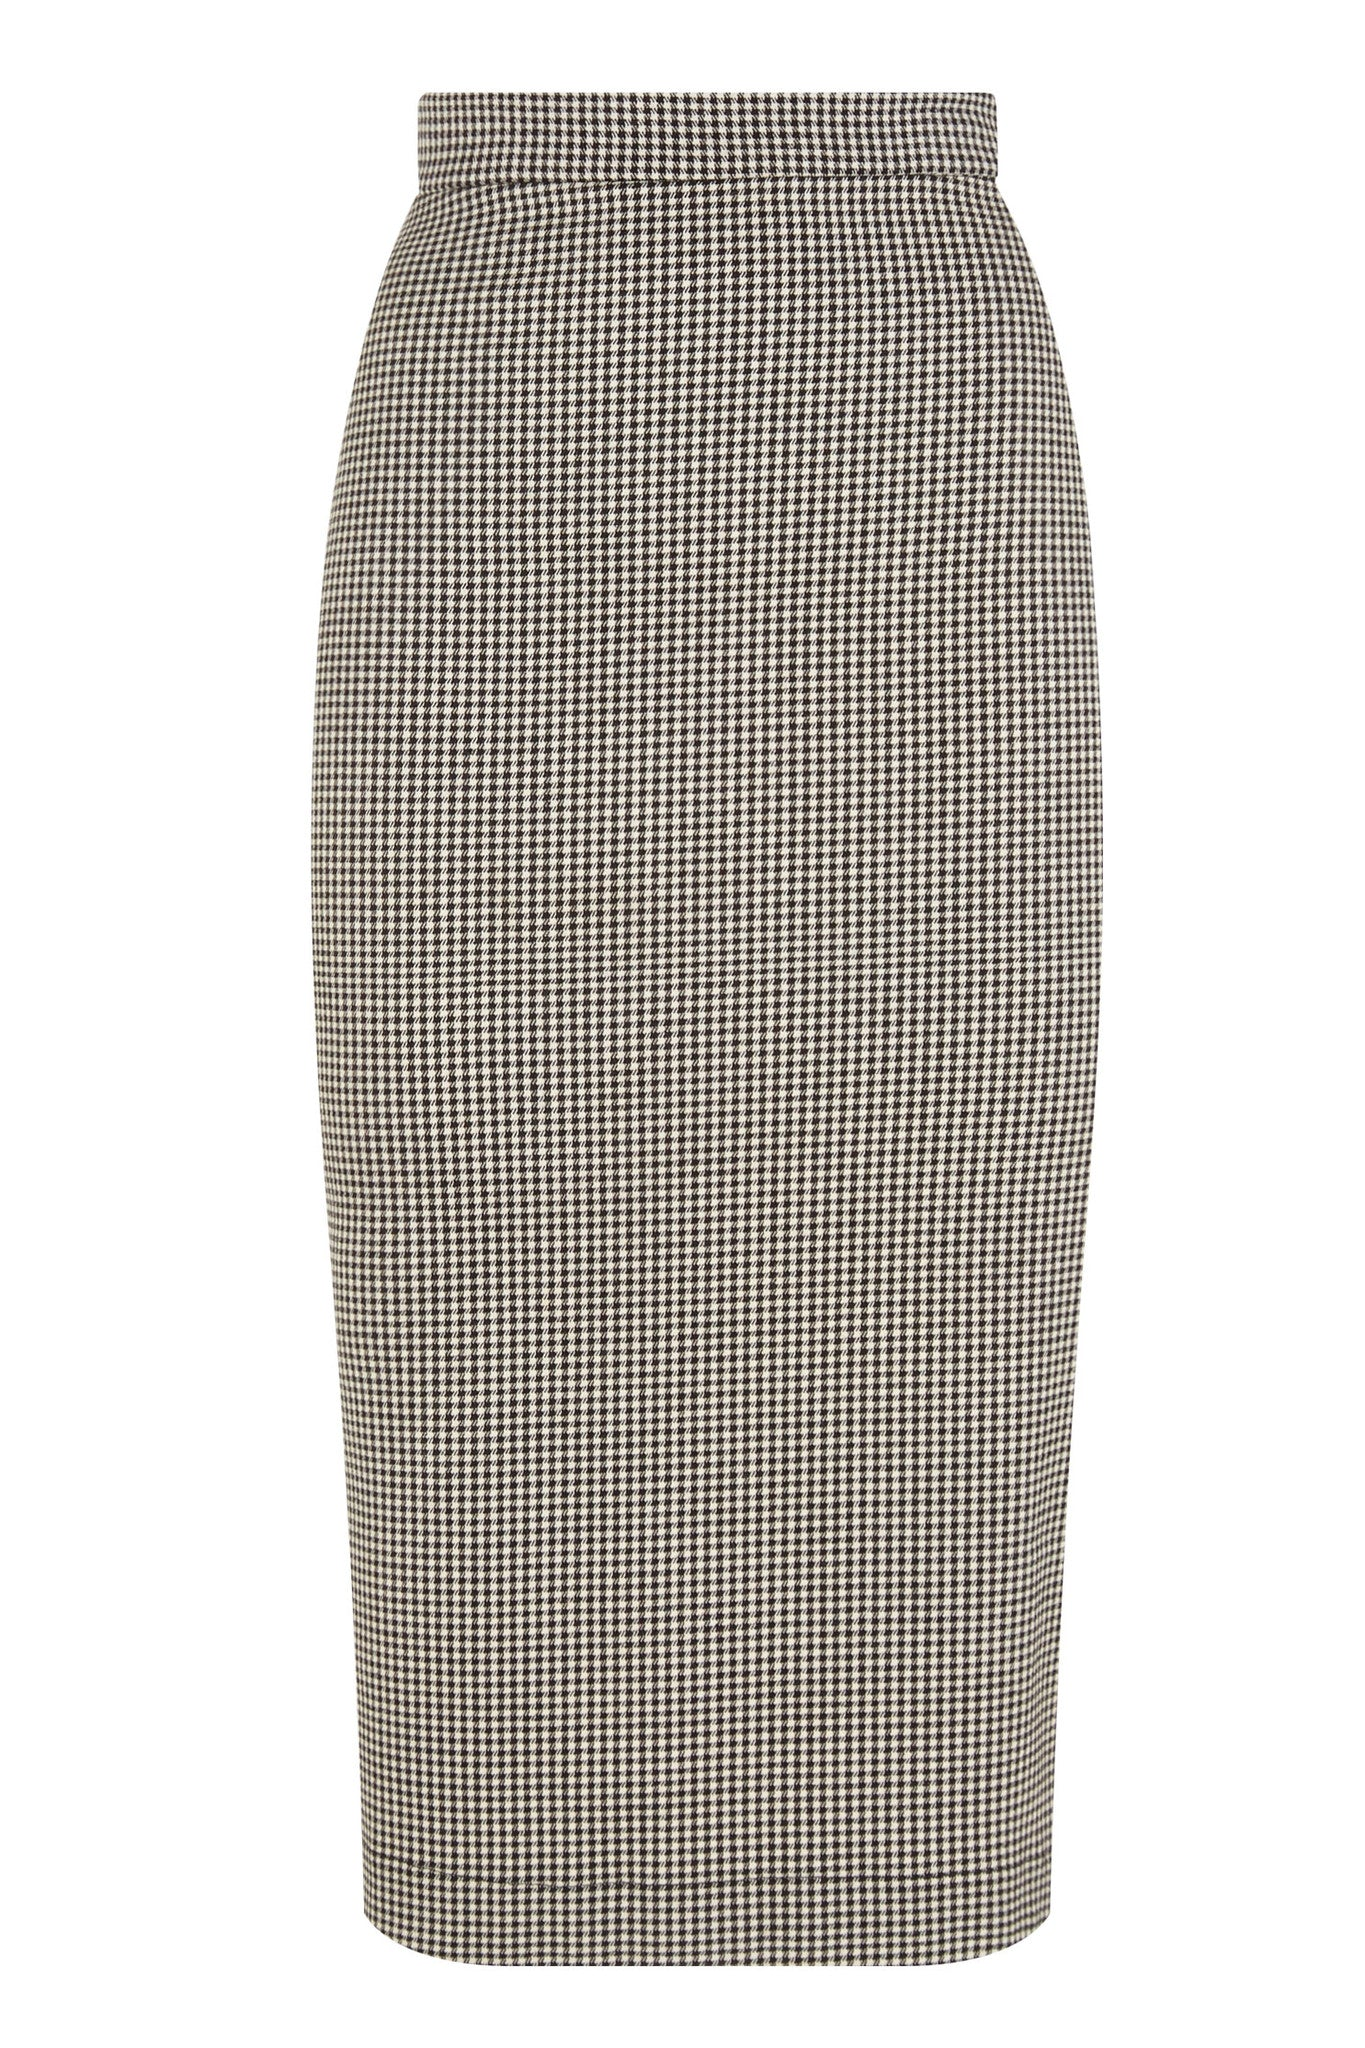 The Wiggle Skirt - Houndstooth